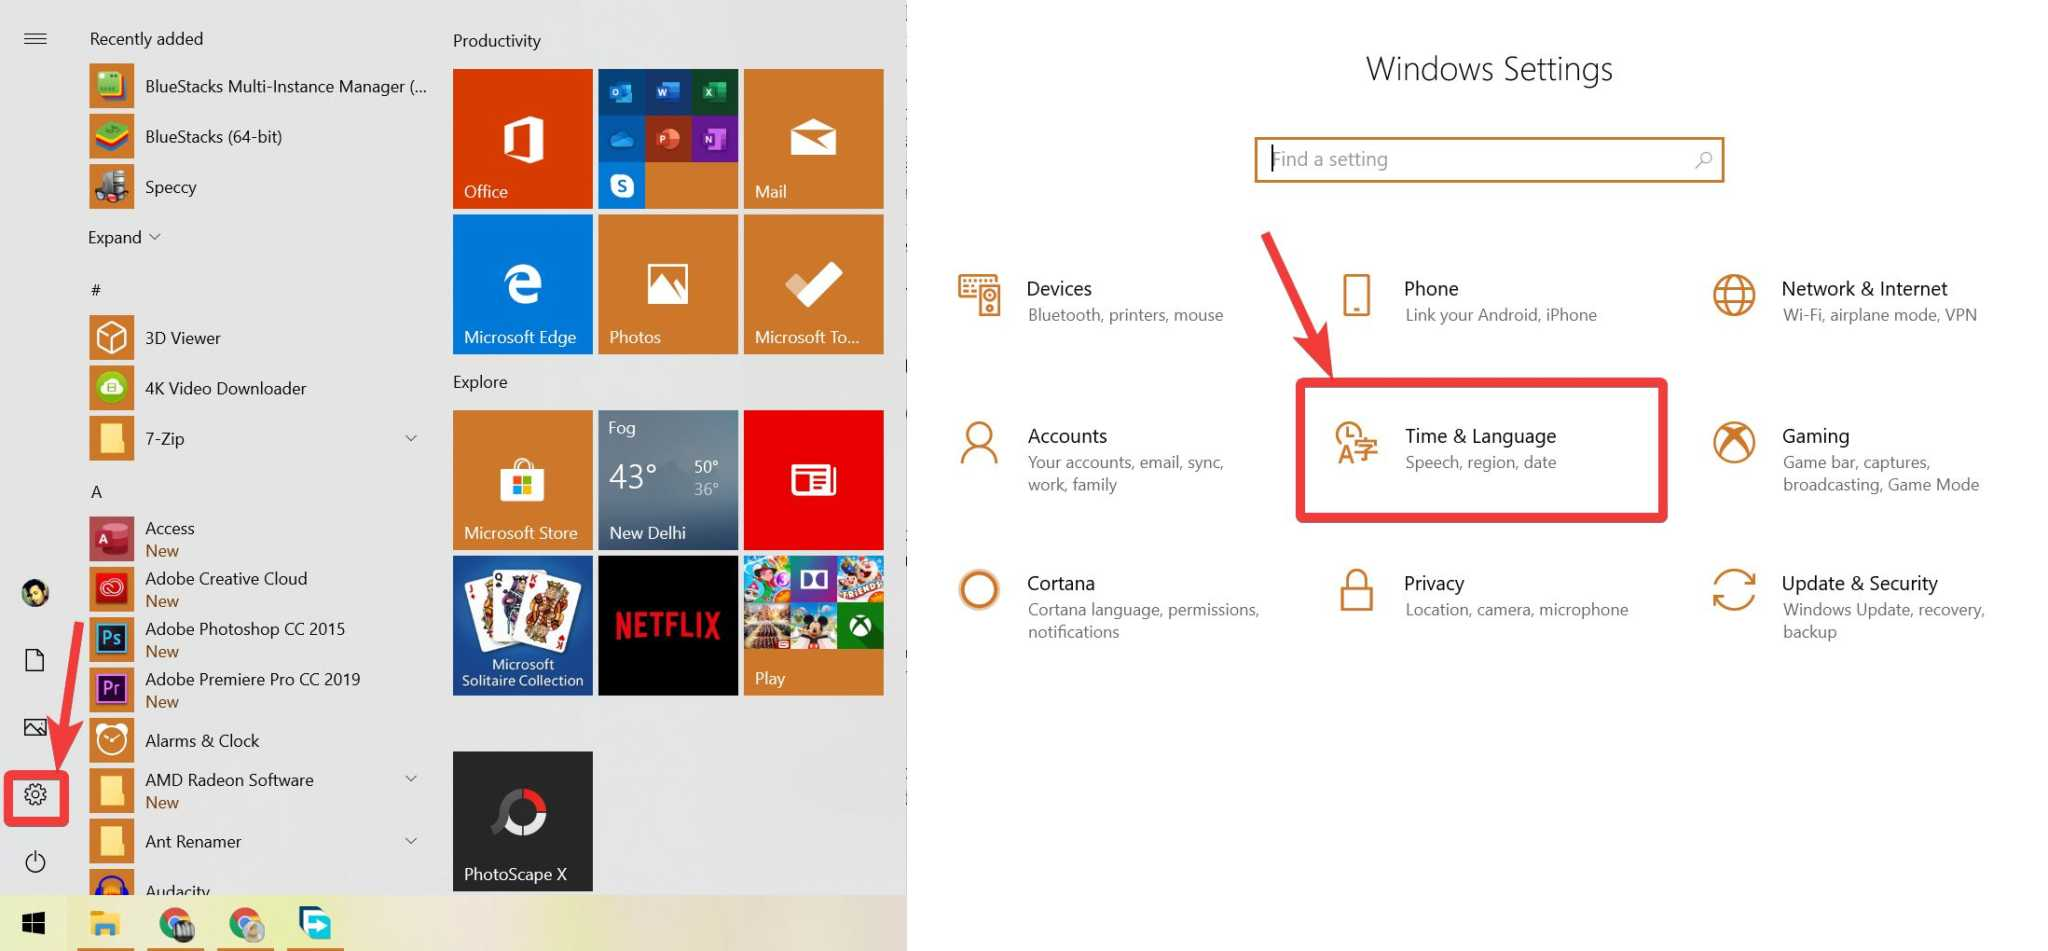 Add new key layout on Windows and Linux 10 20